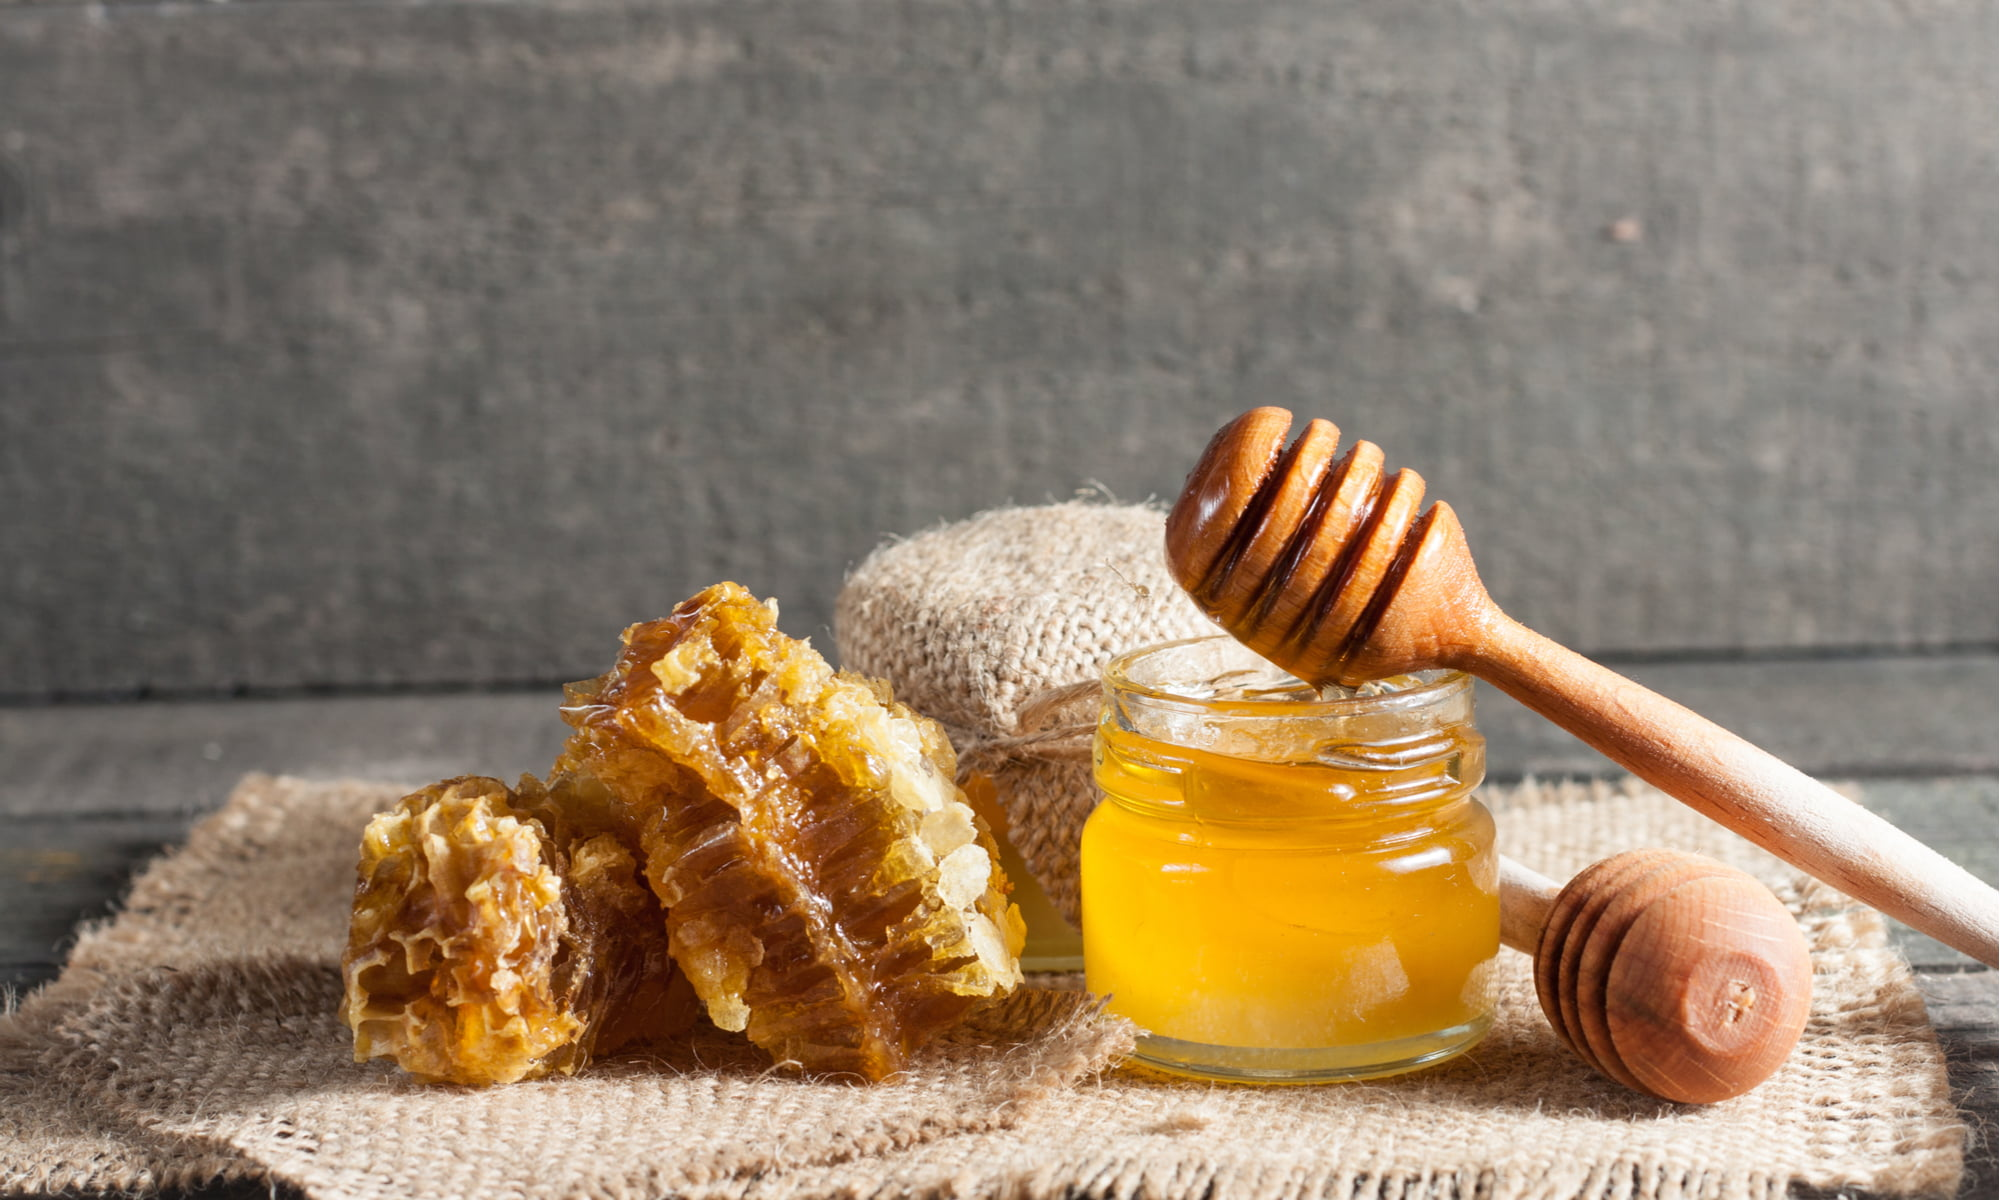 3 SURPRISING USES FOR HONEY (IT'S NOT JUST A SWEETENER!)